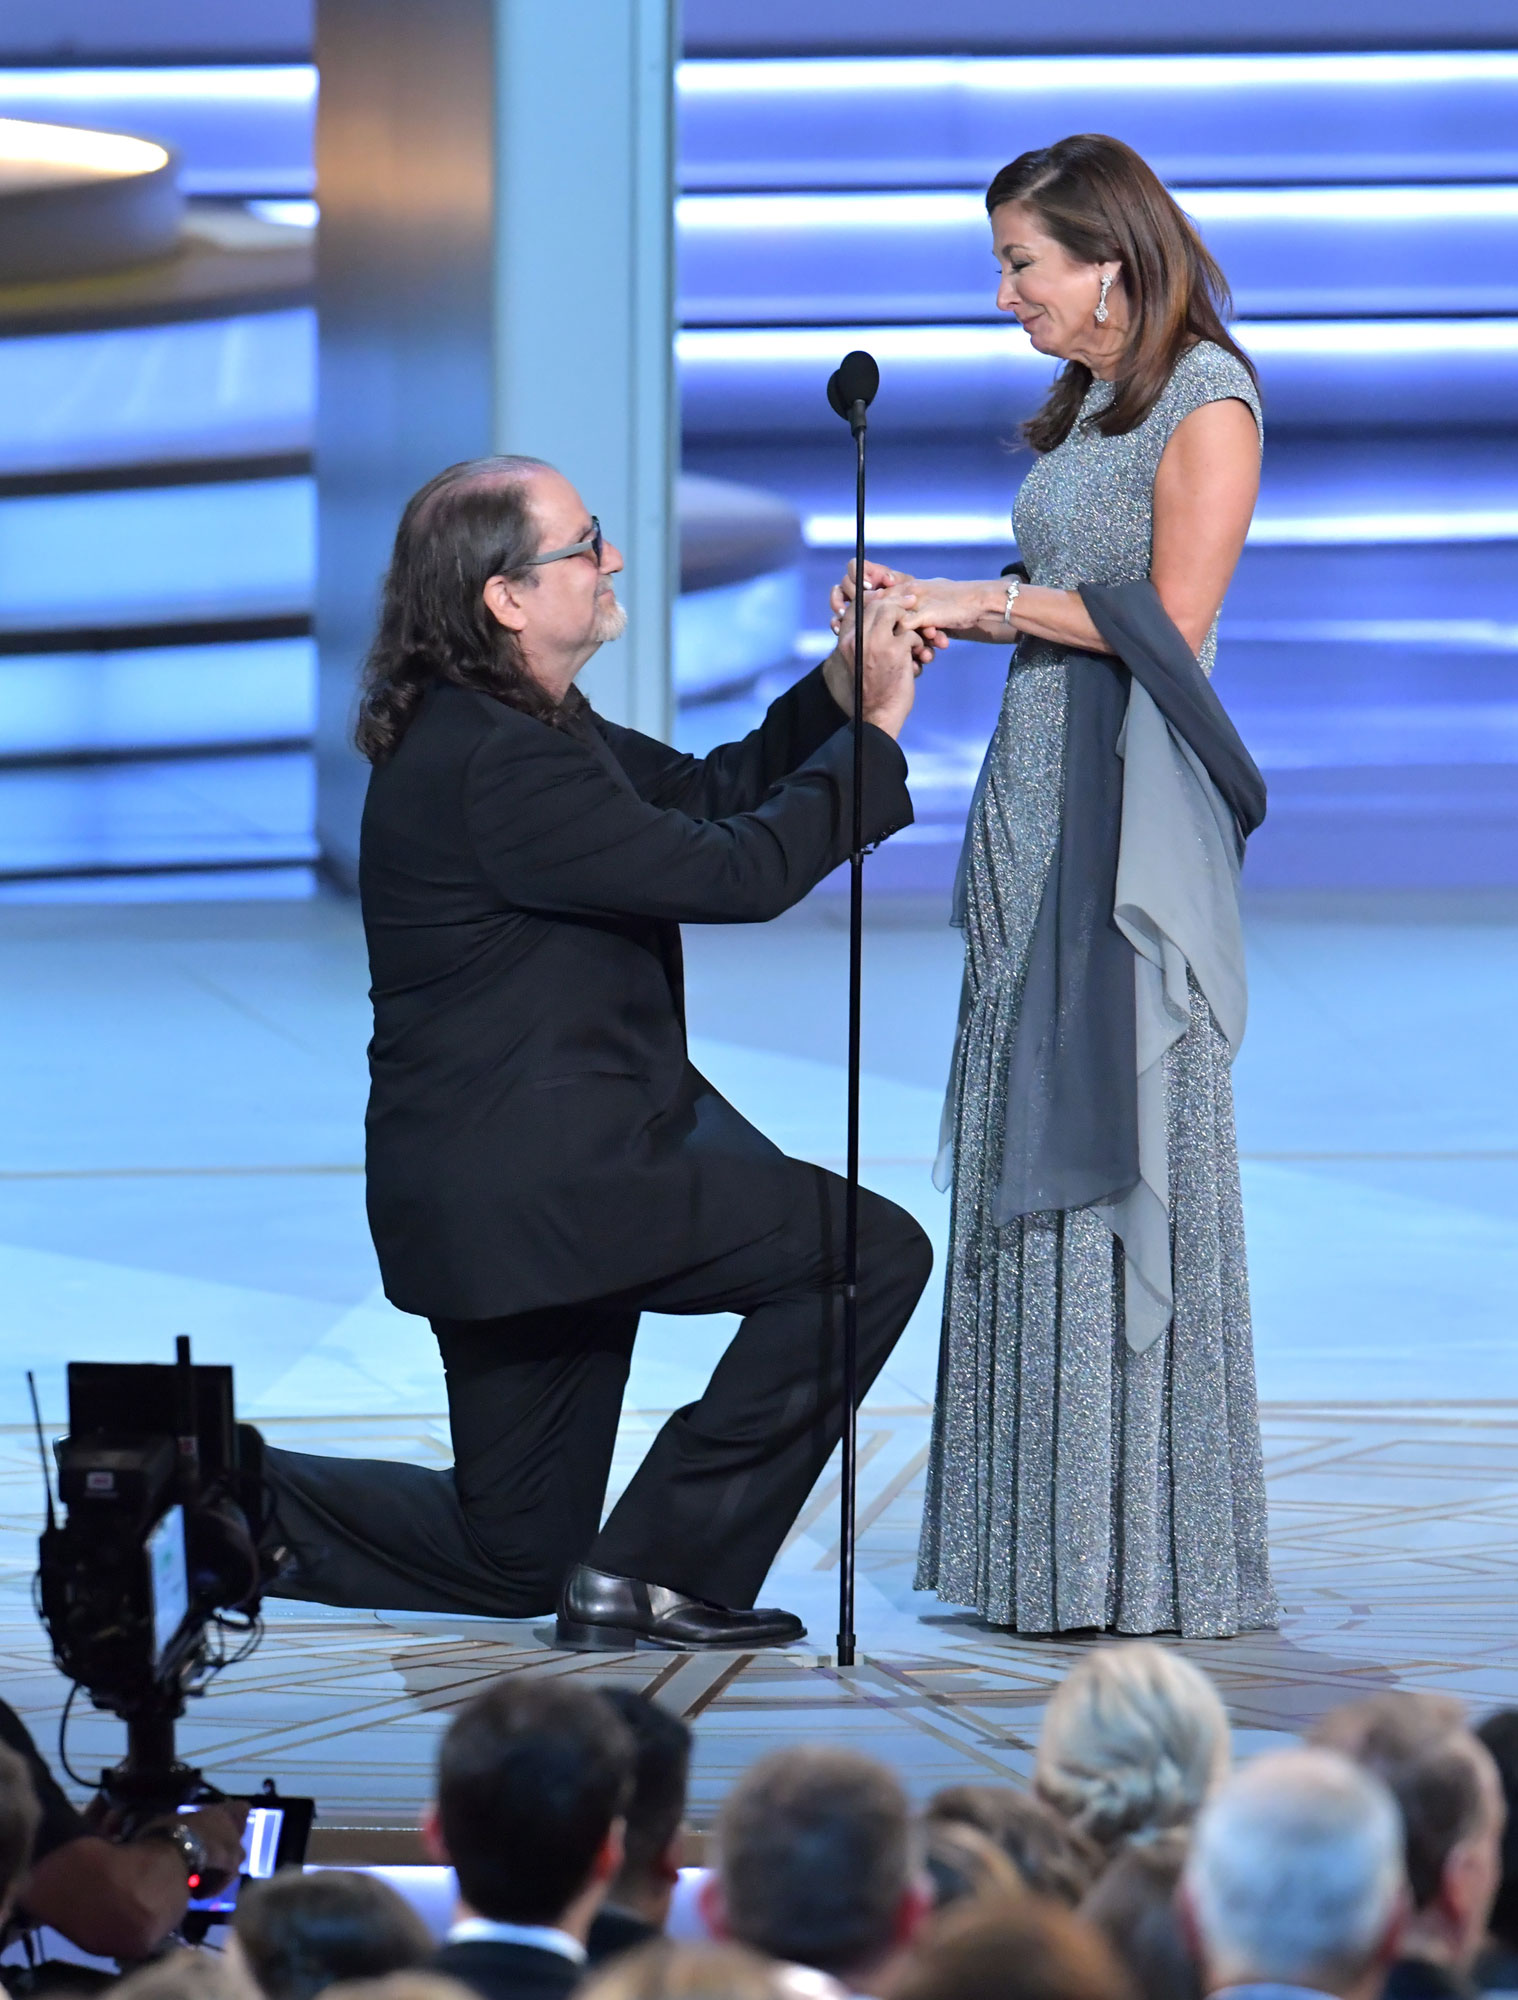 glenn weiss - Glenn Weiss (L), winner of the Outstanding Directing for a Variety Special award for 'The Oscars,' and Jan Svendsen get engaged onstage during the 70th Emmy Awards at Microsoft Theater on September 17, 2018 in Los Angeles, California. (Photo by Lester Cohen/WireImage)